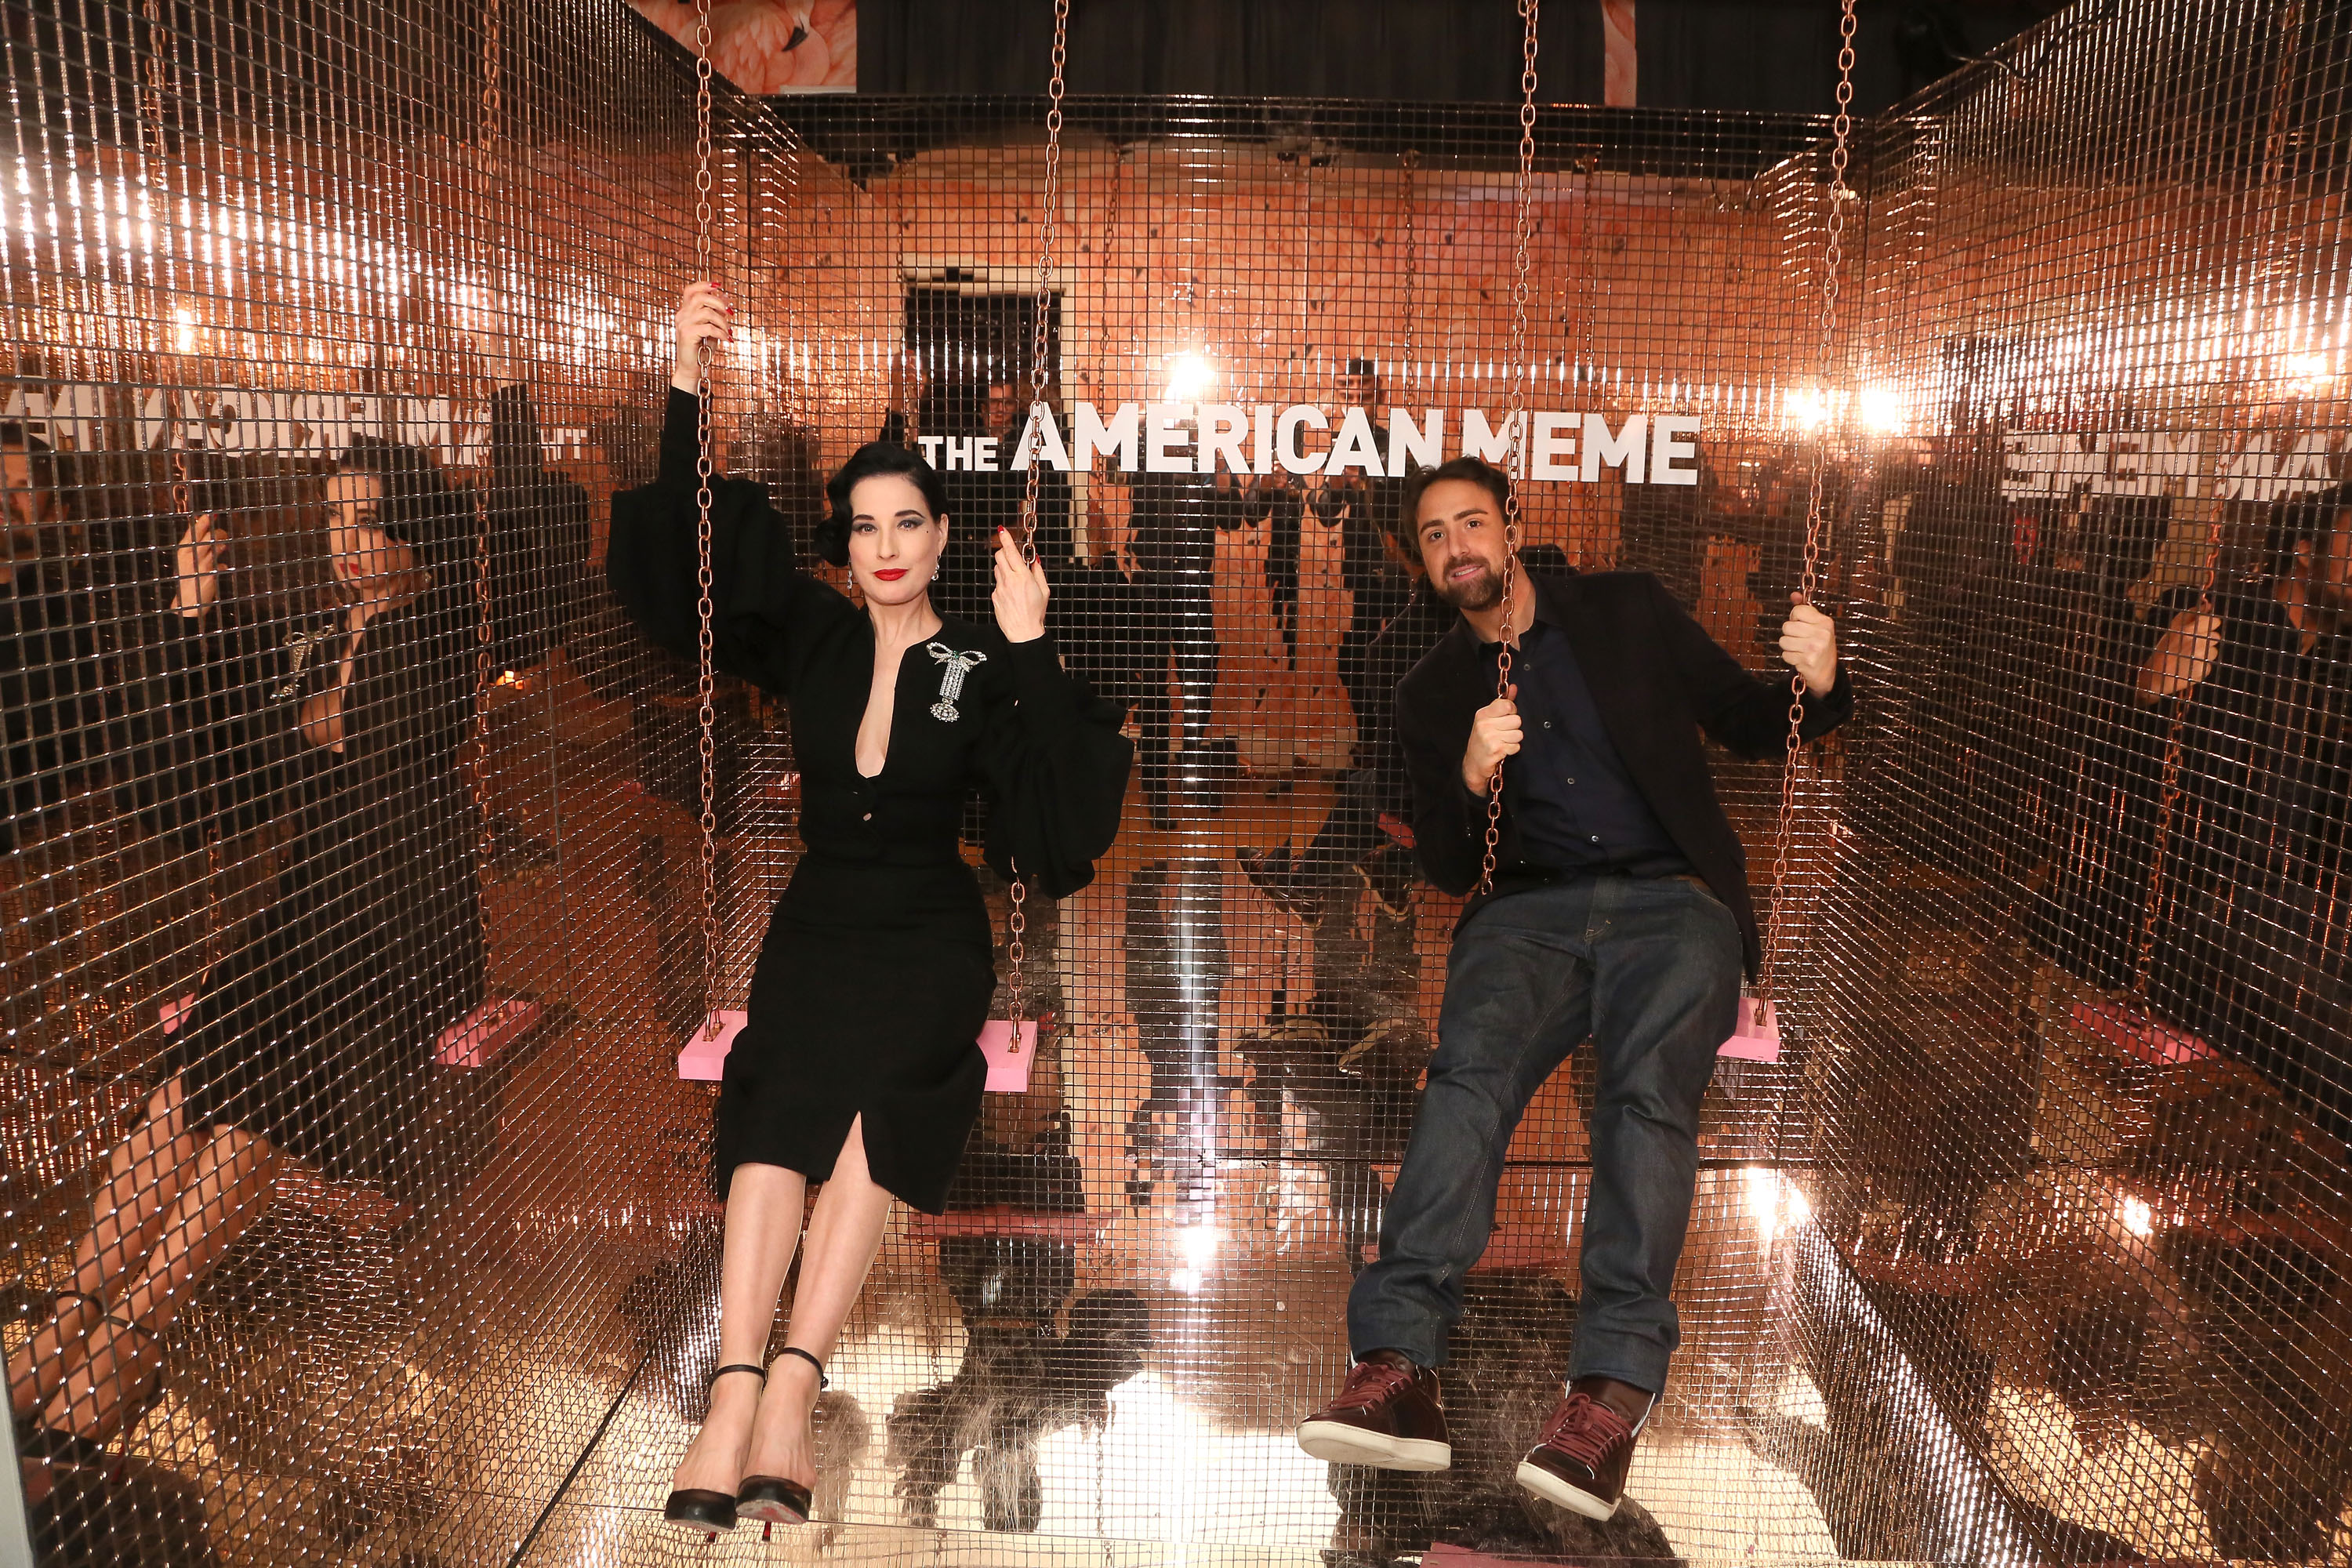 Dita Von Teese (L) and Bert Marcus attend The American Meme special screening after party at the private residence of Jonas Tahlin, CEO of Absolut Elyx, on December 4, 2018 in Los Angeles, California. (Photo by Gabriel Olsen/Getty Images for Absolut Elyx )